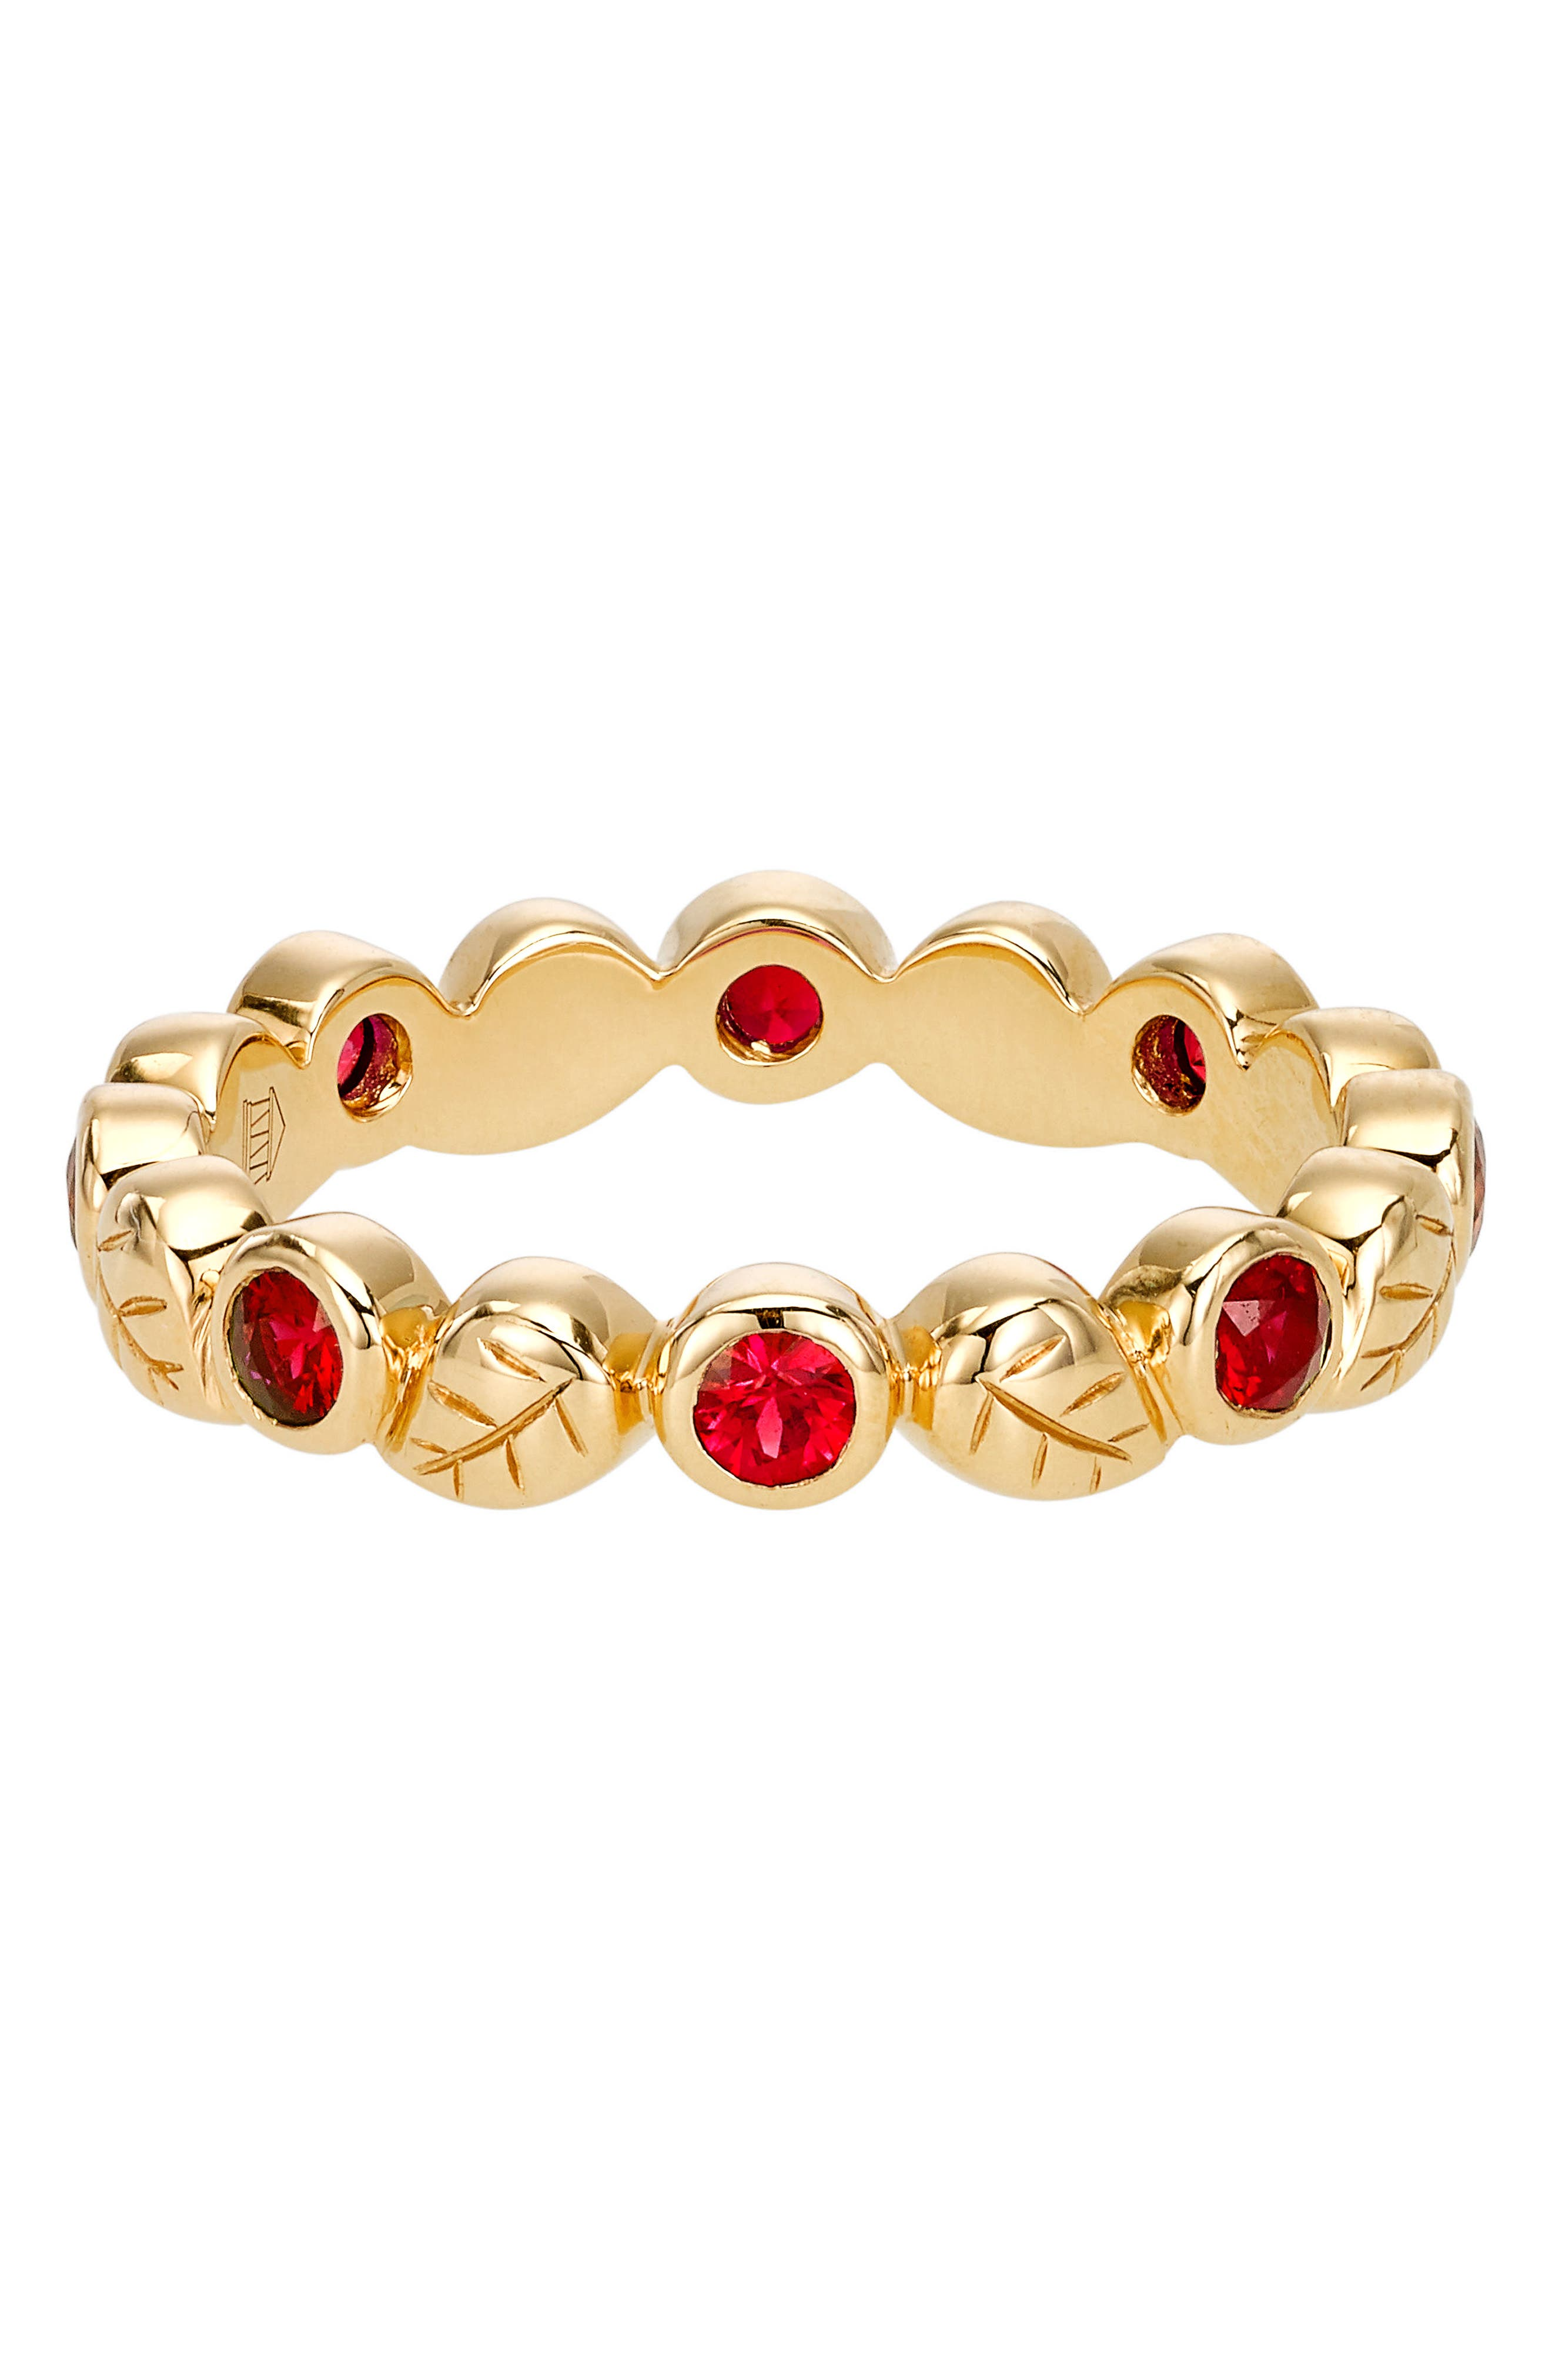 Temple St. Clair Objet Trouvé Arcadia Band Ring,                             Main thumbnail 1, color,                             Yellow Gold/ Ruby